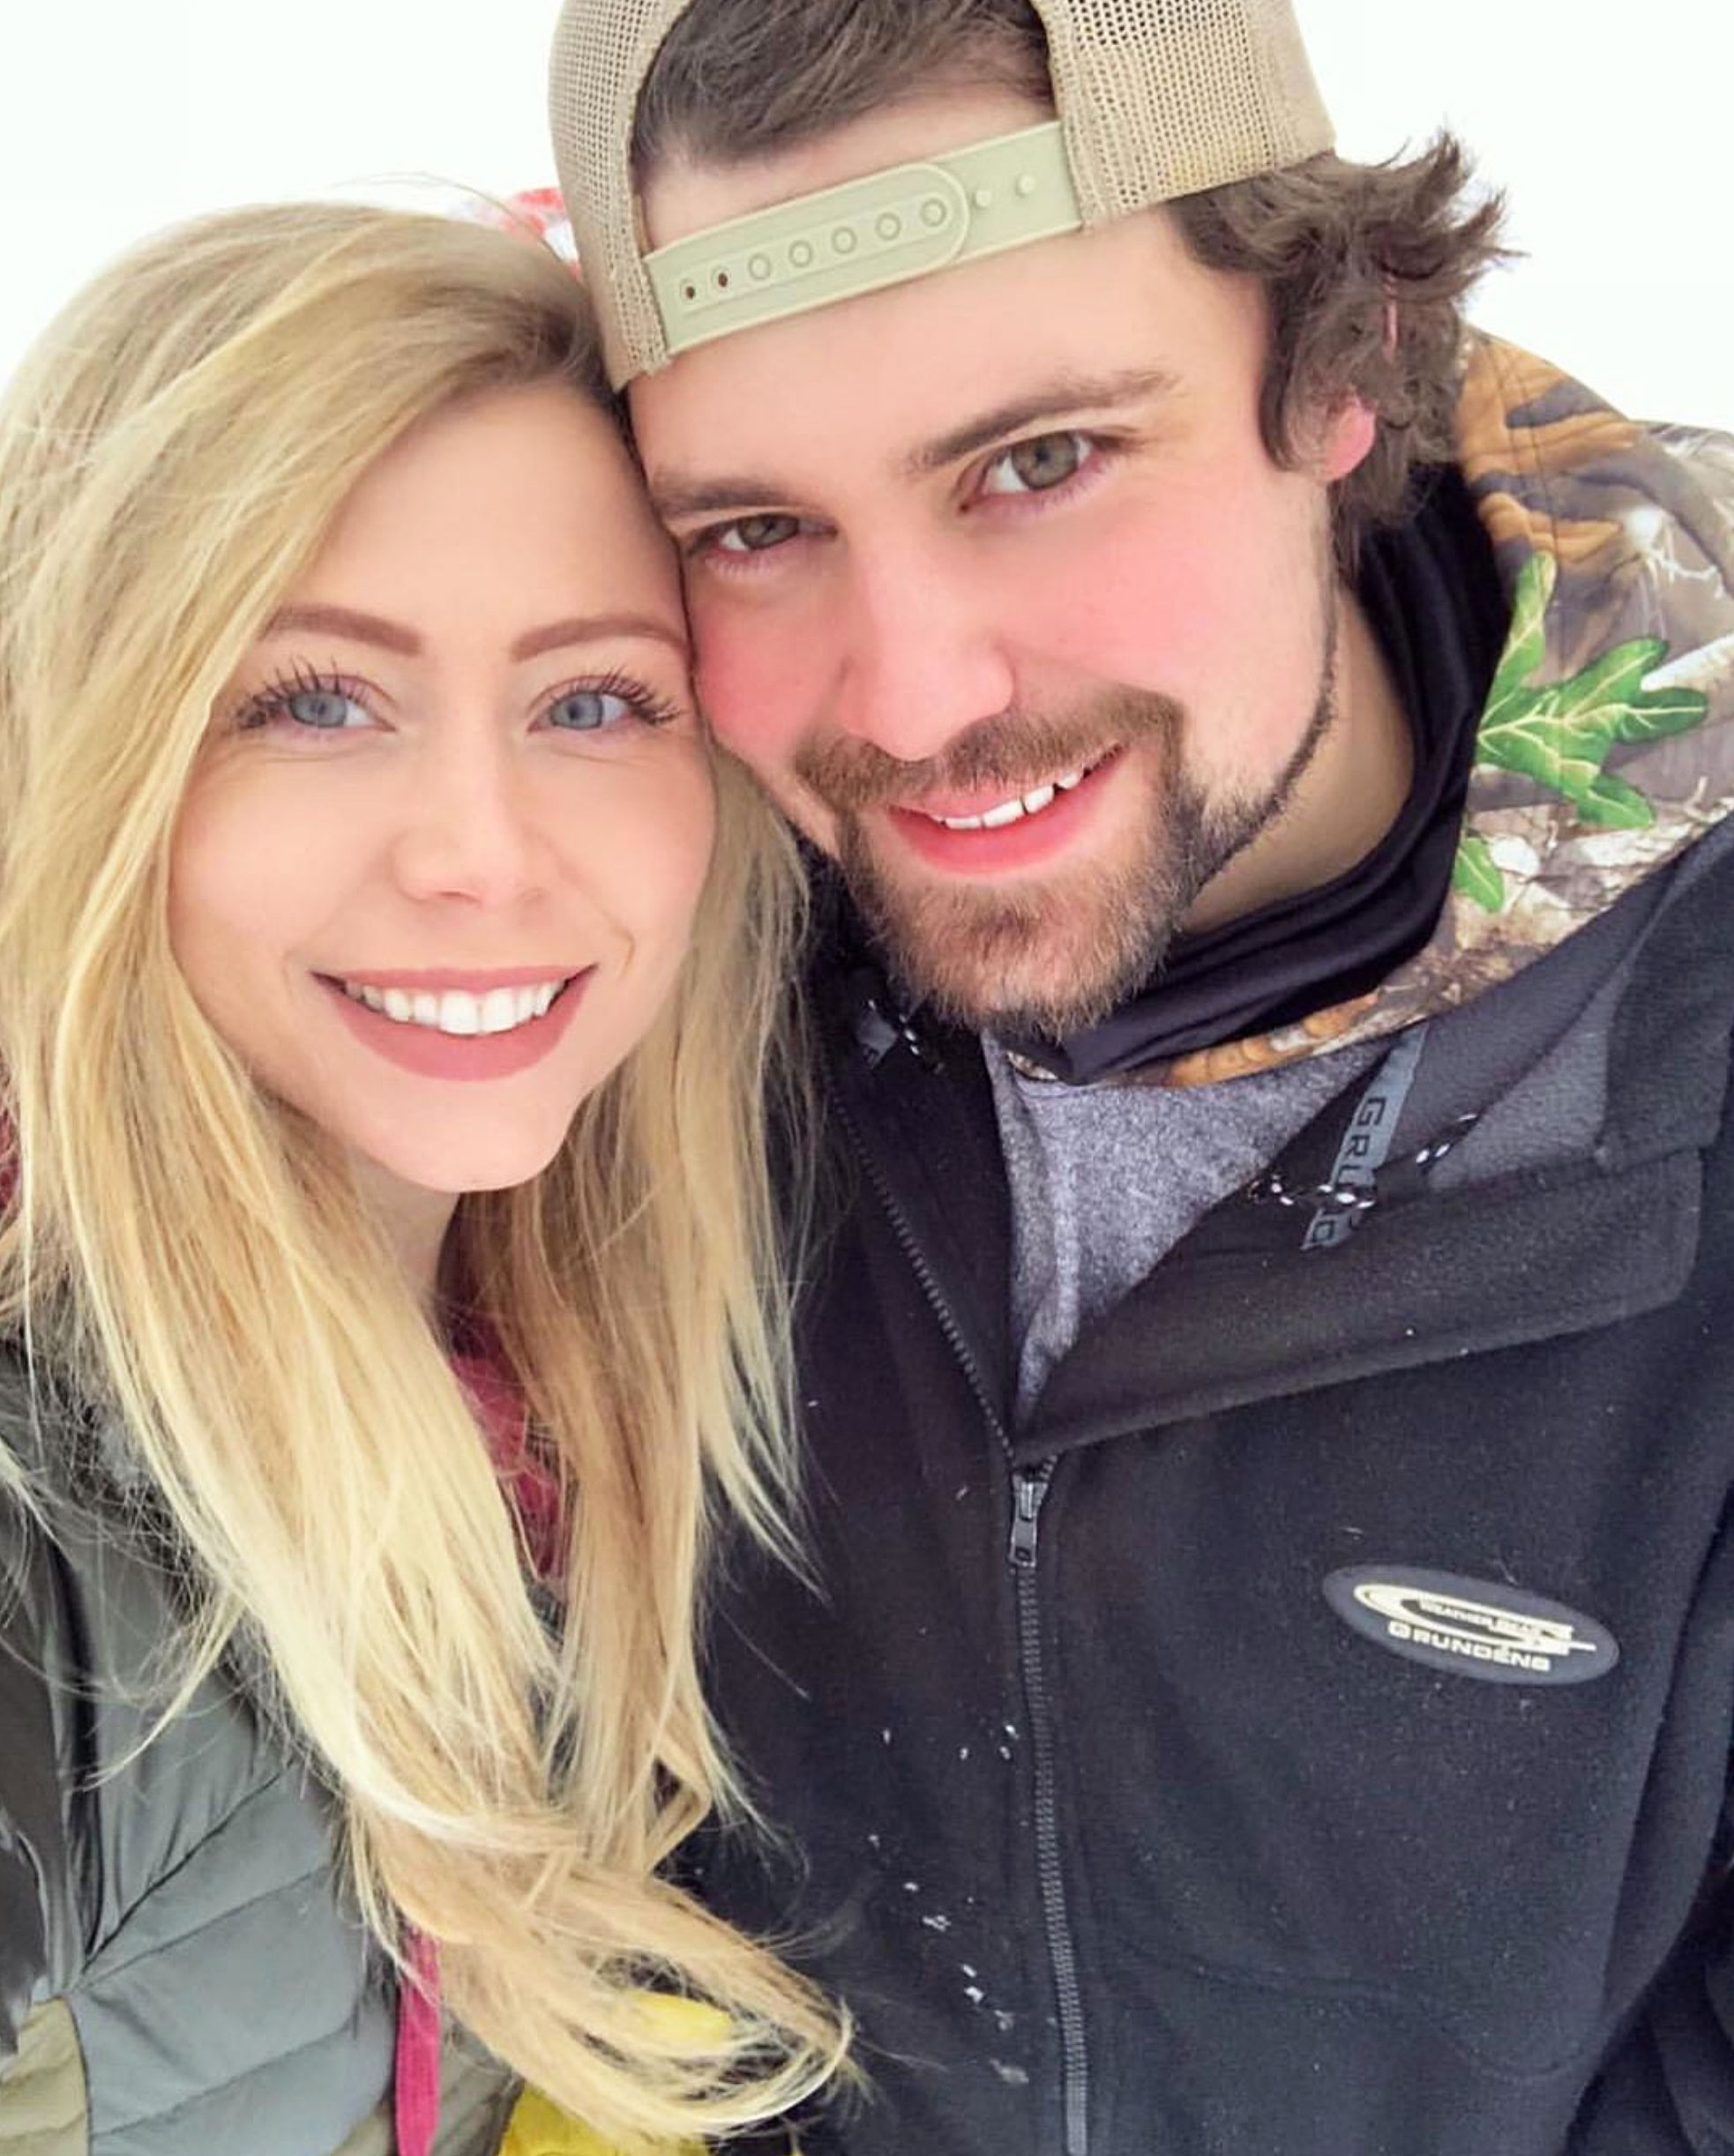 Bristol Palin Ex Levi Johnston Welcomes Baby Number 4 With Wife Sunny Oglesby